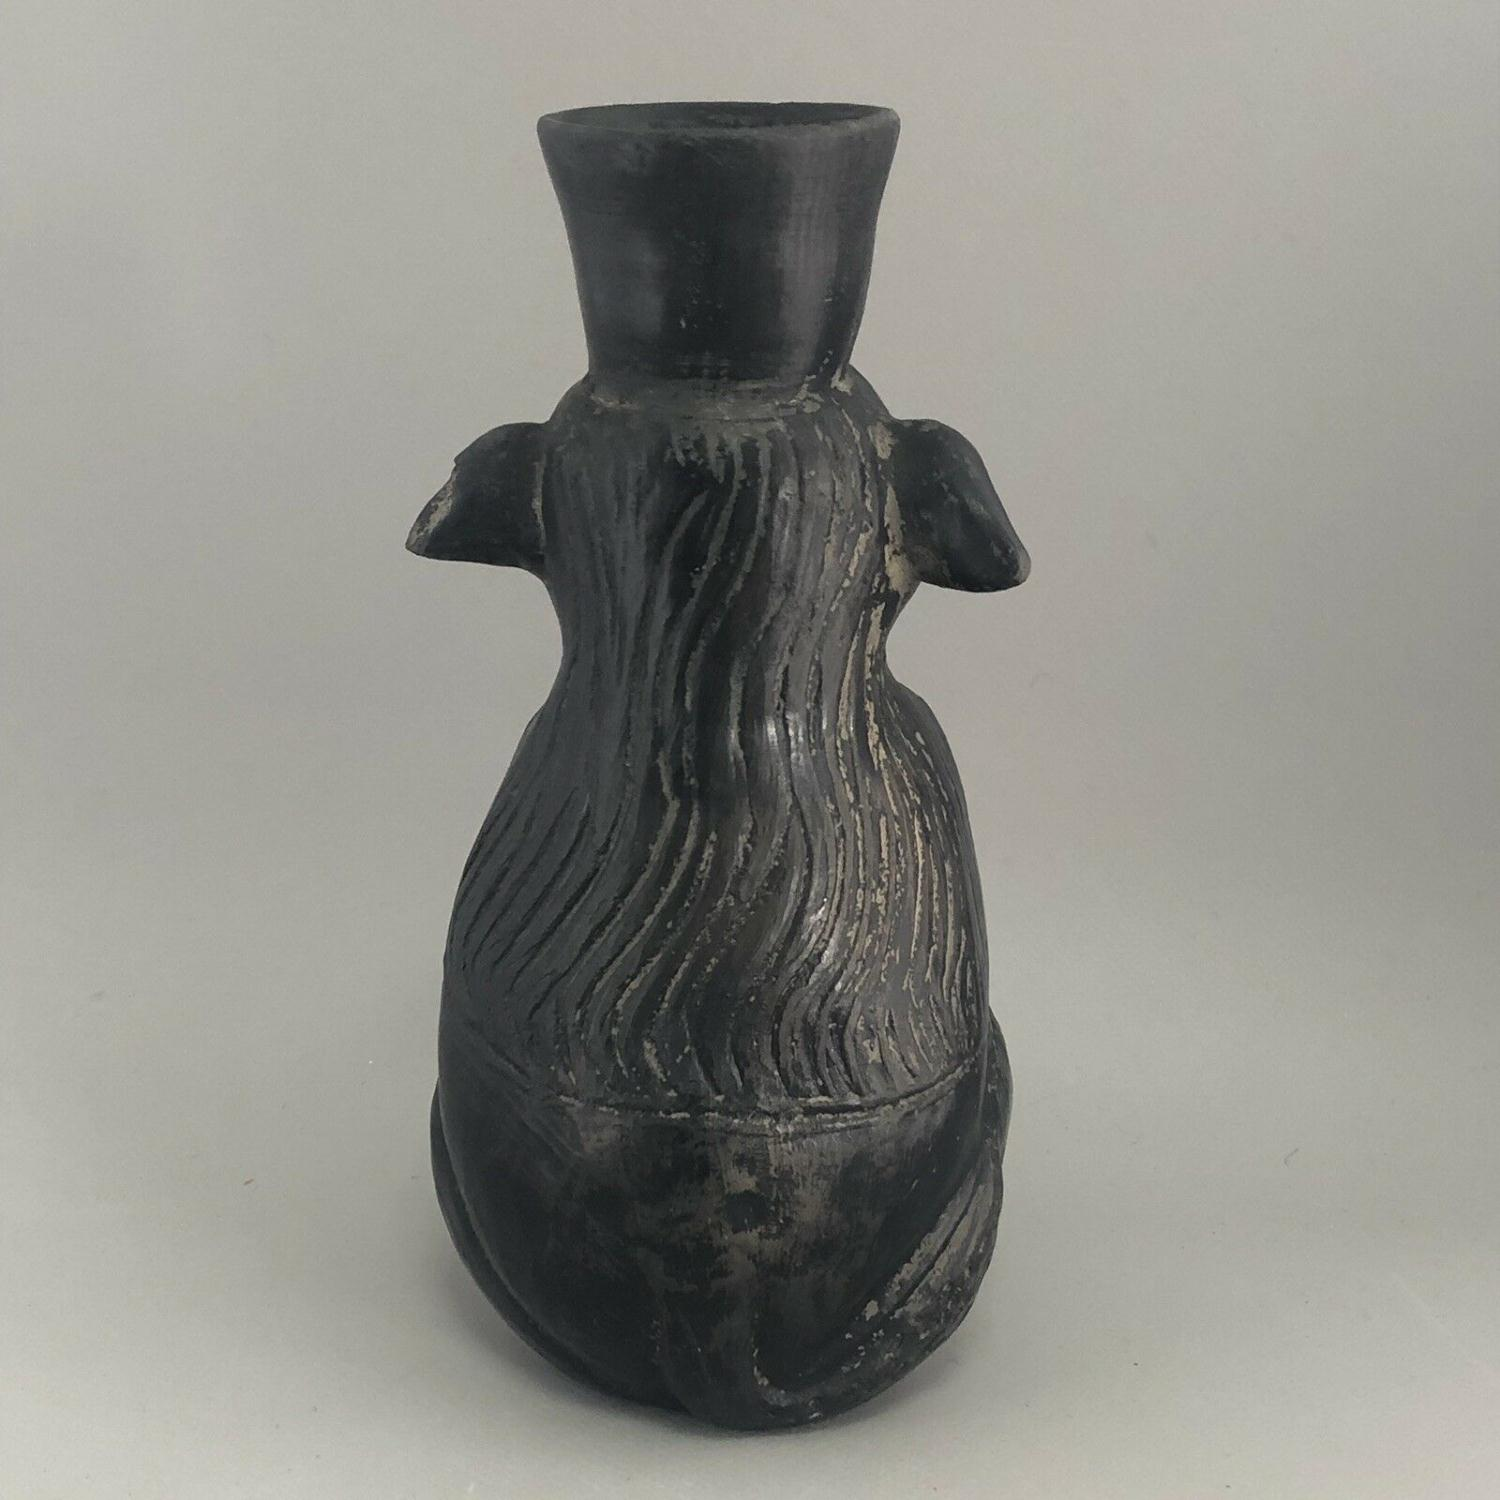 Lot 47 - Antique Primitive South American Clay Pottery Figural Dog Vase